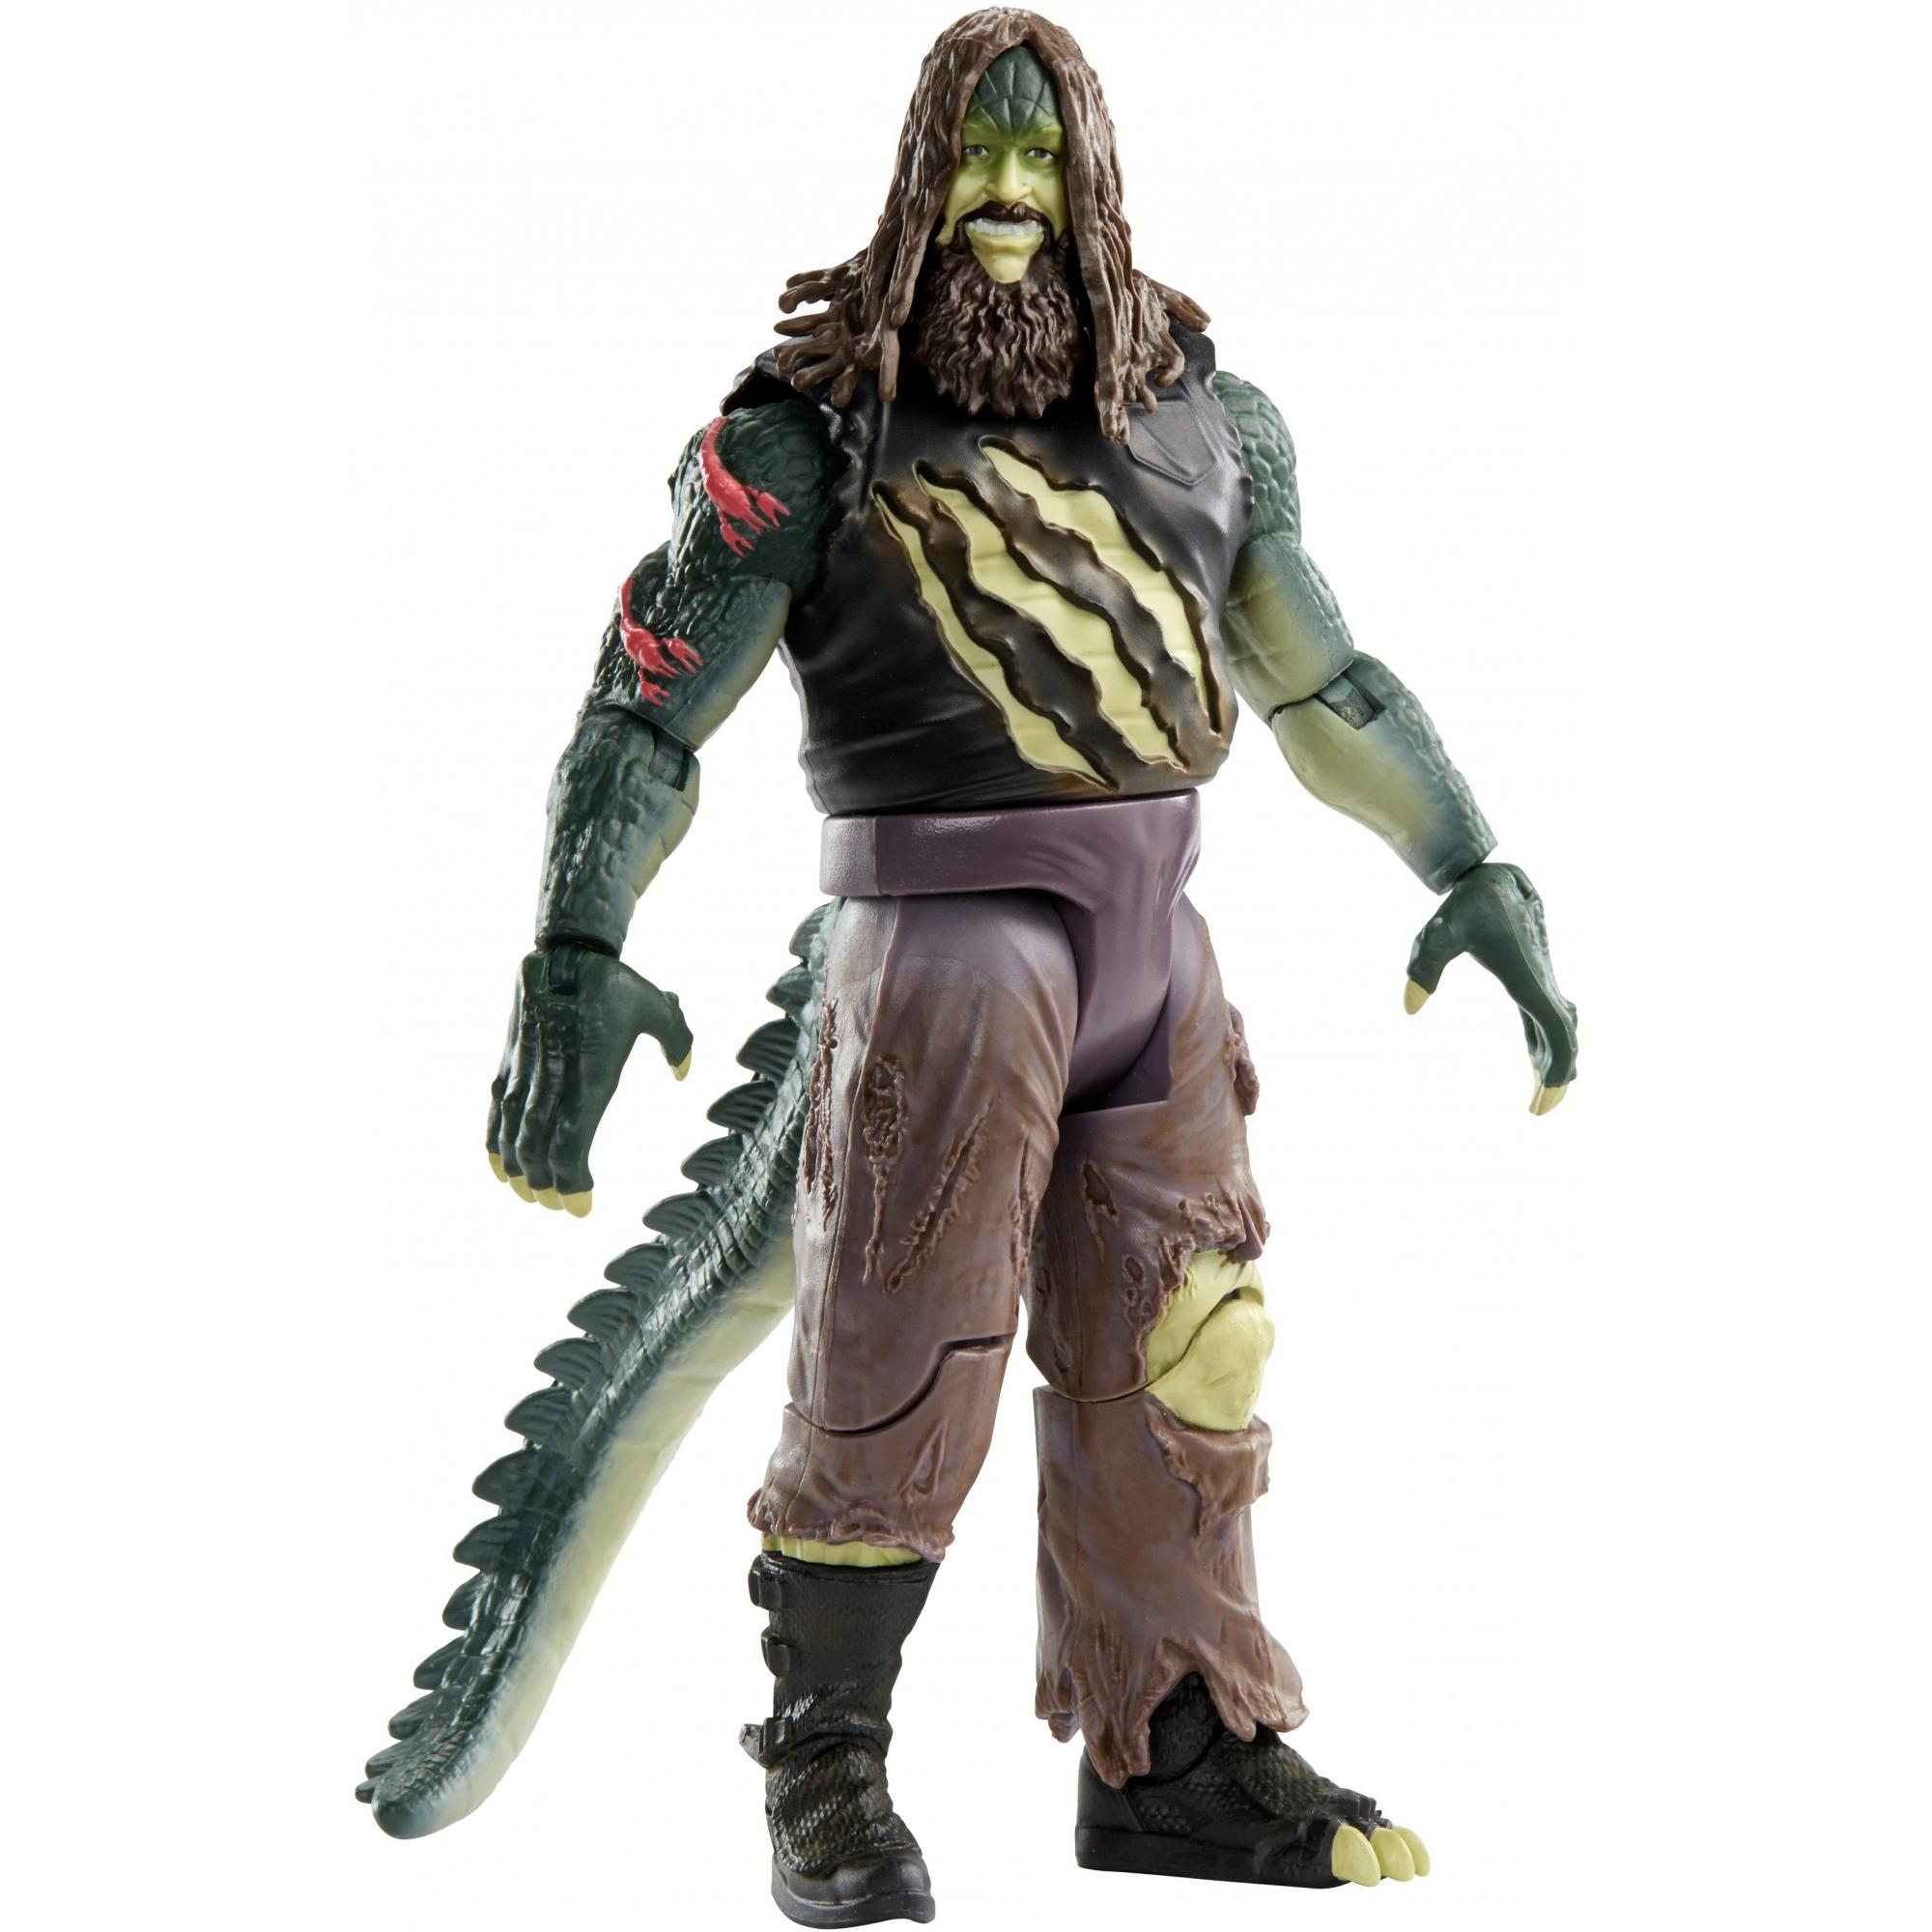 WWE Mutant Bray Wyatt Figure